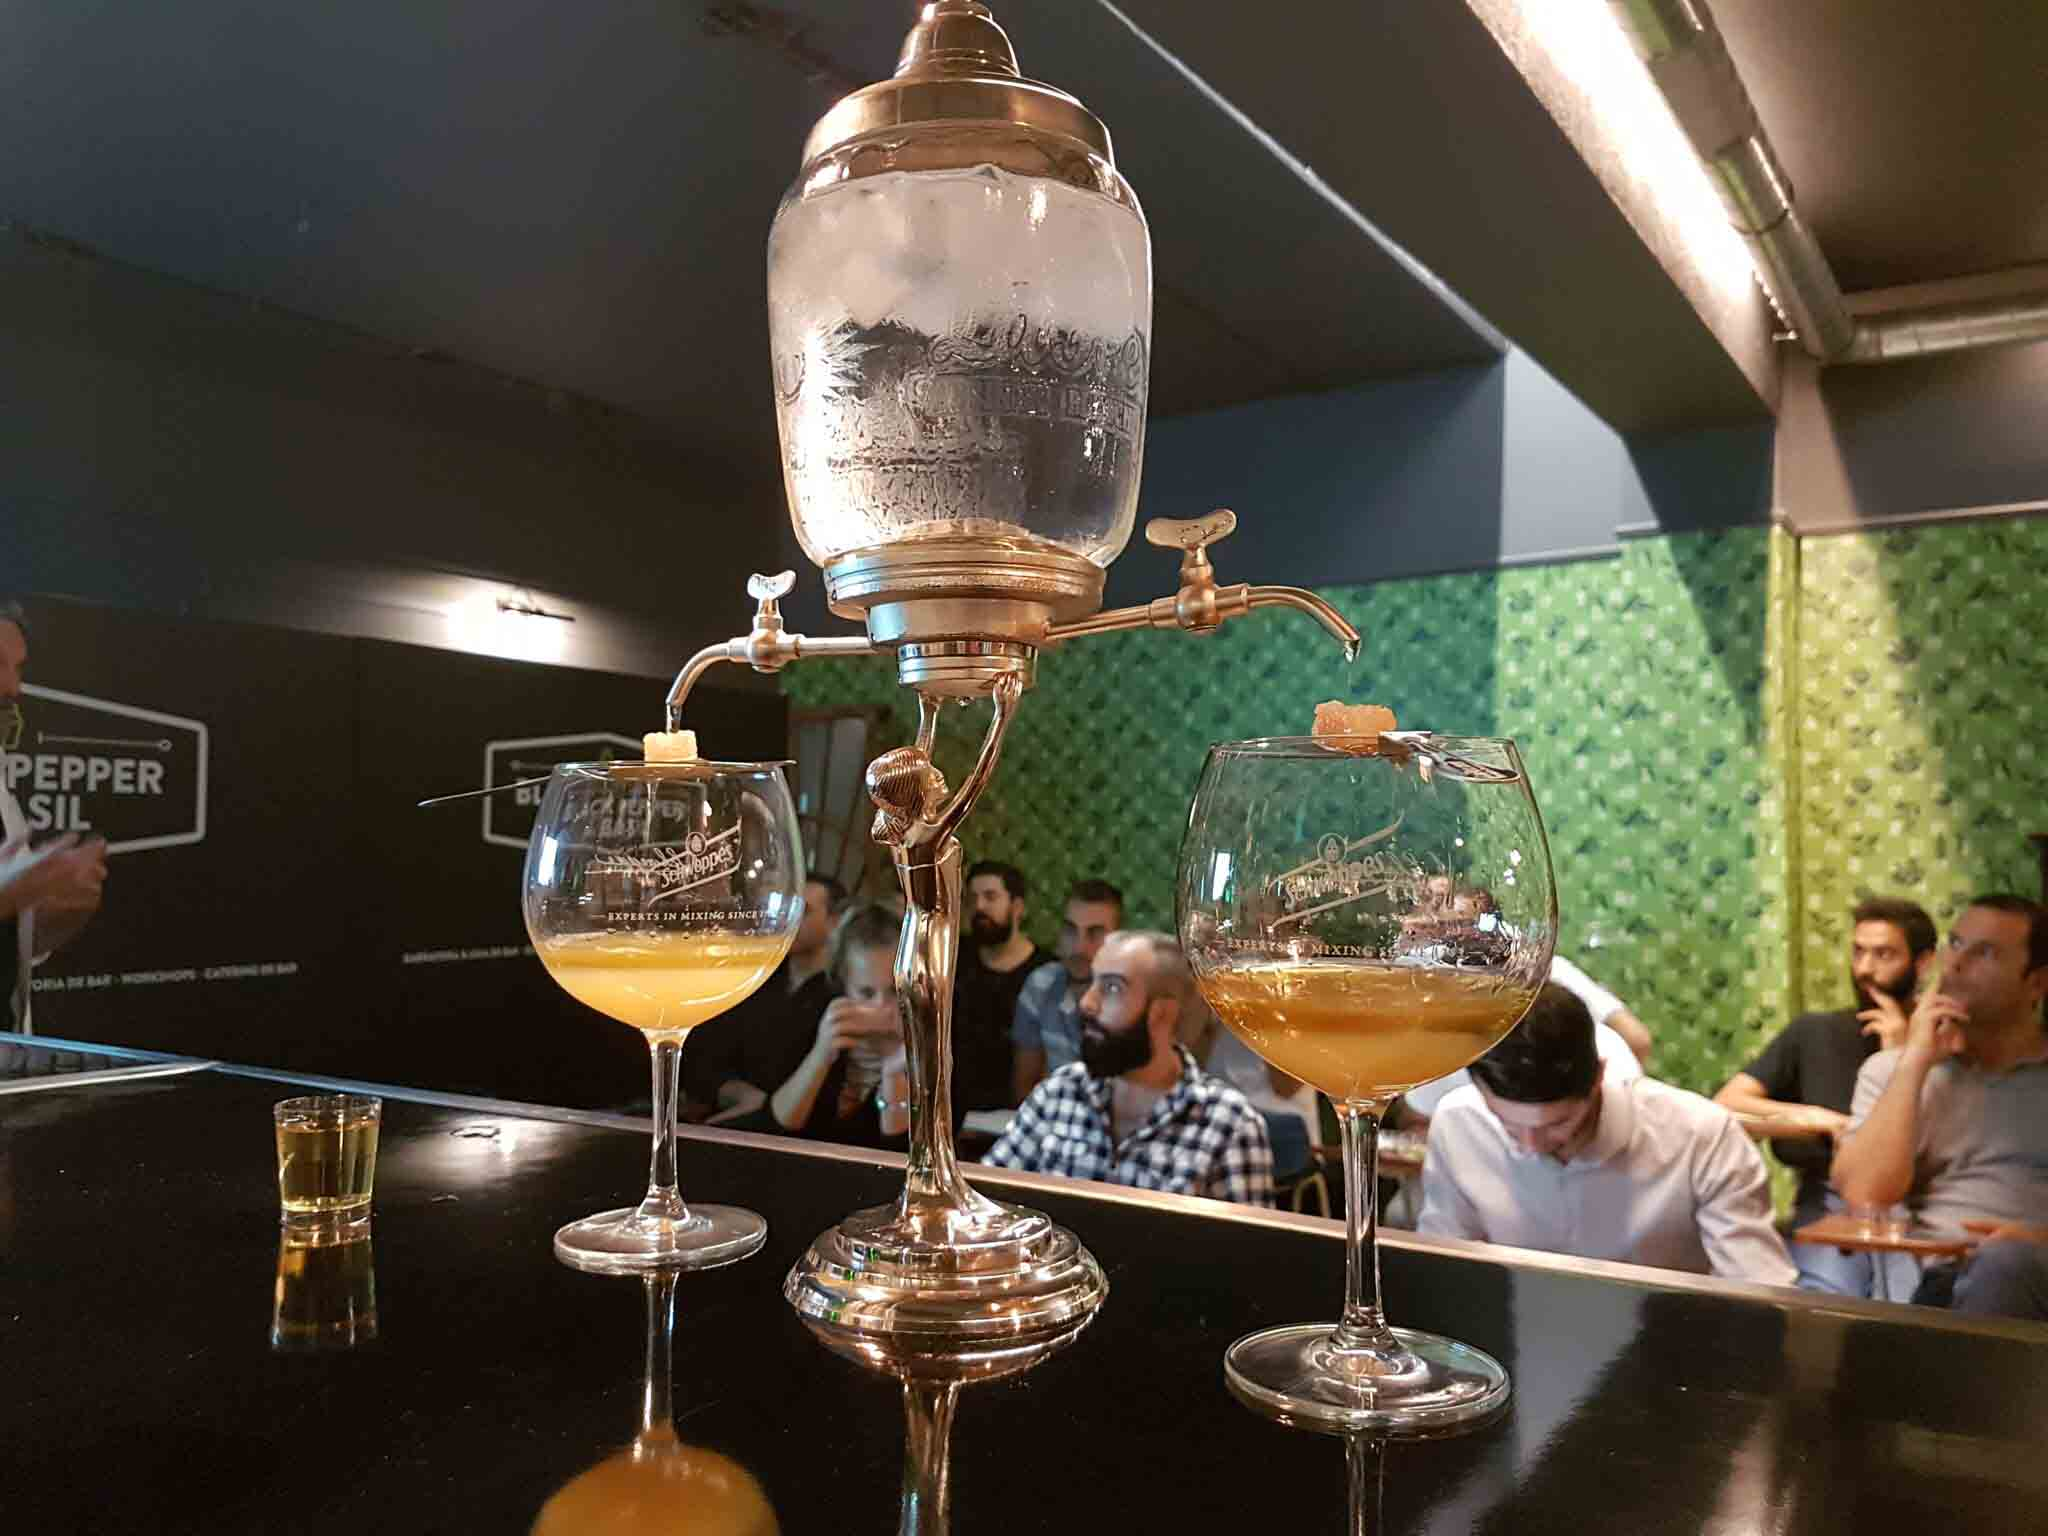 La Fée Absinthe fountain with two glasses